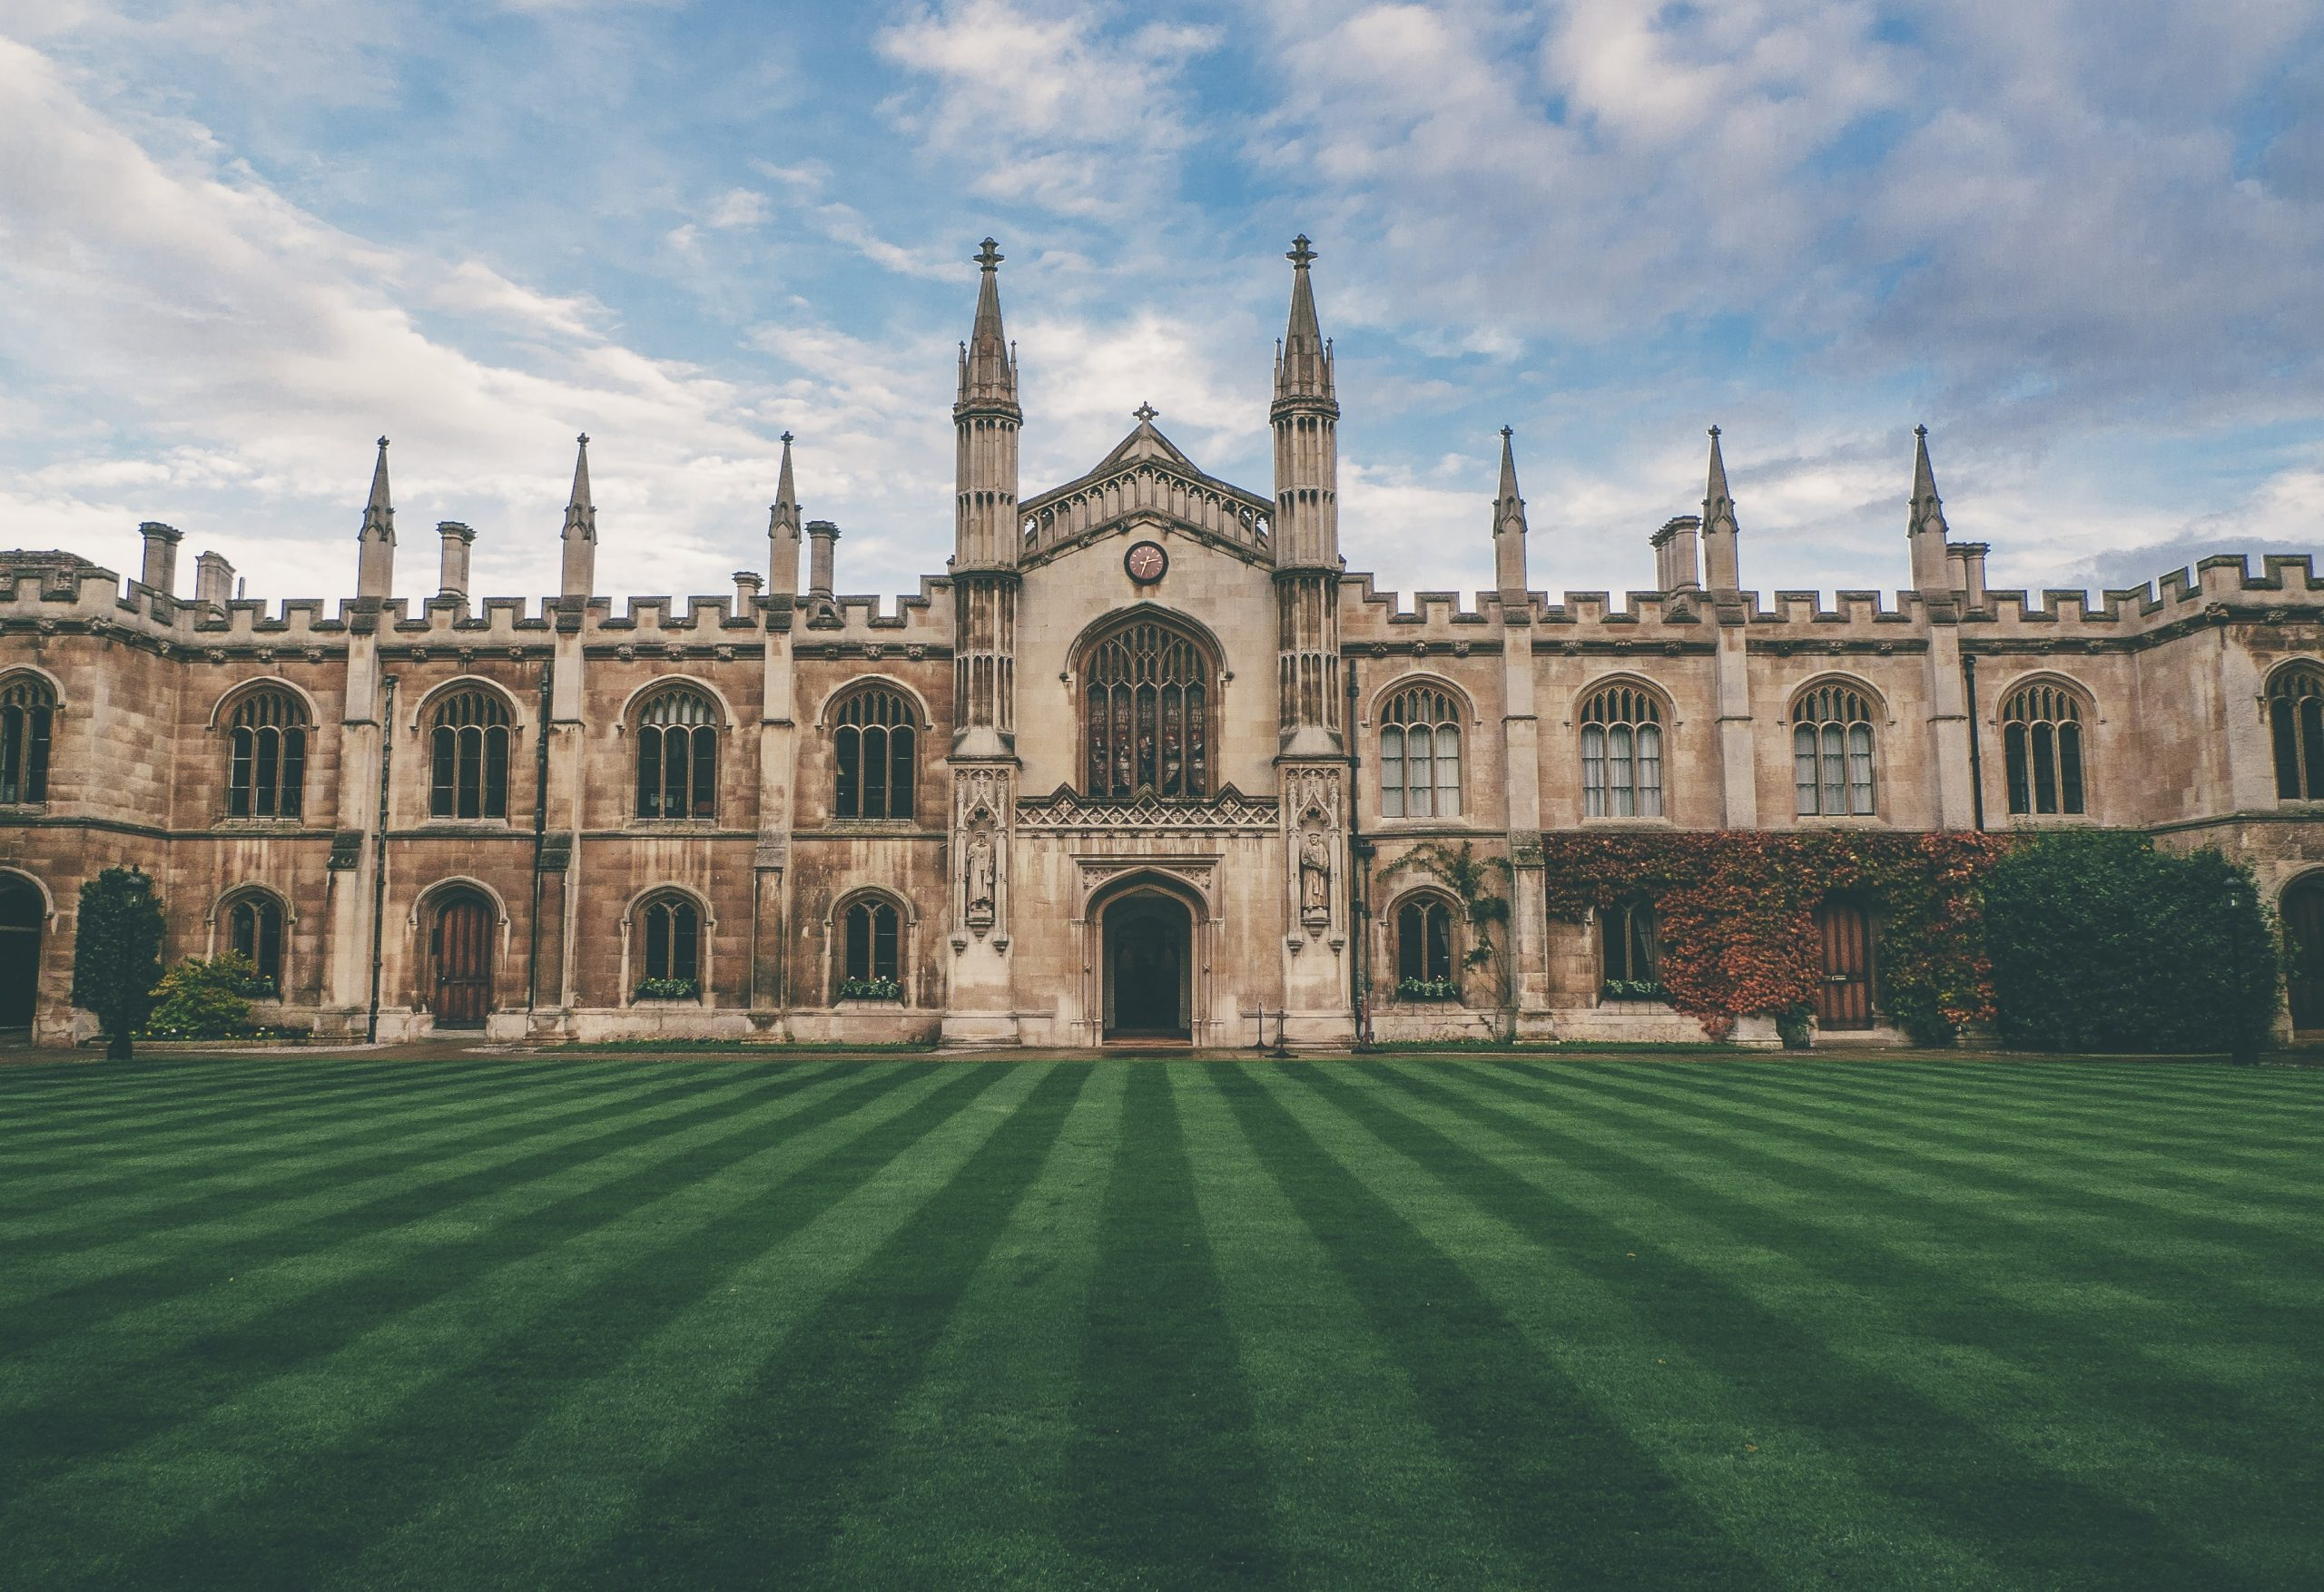 Uncovering Oxford: All About The City of Dreaming Spires